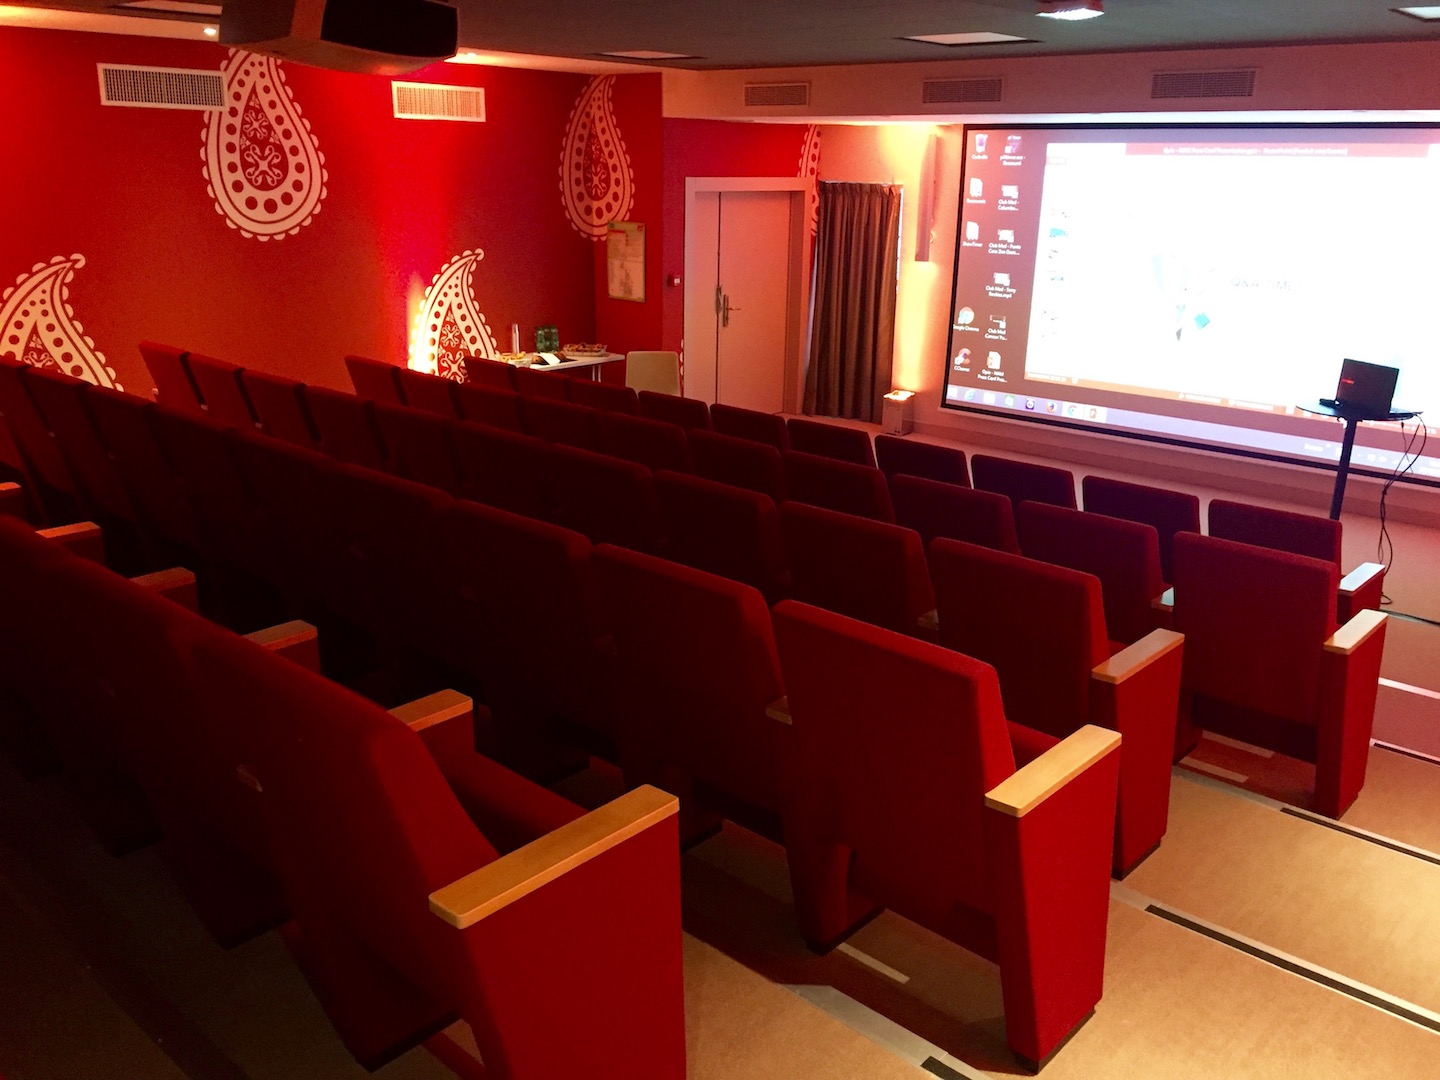 salle de cinéma